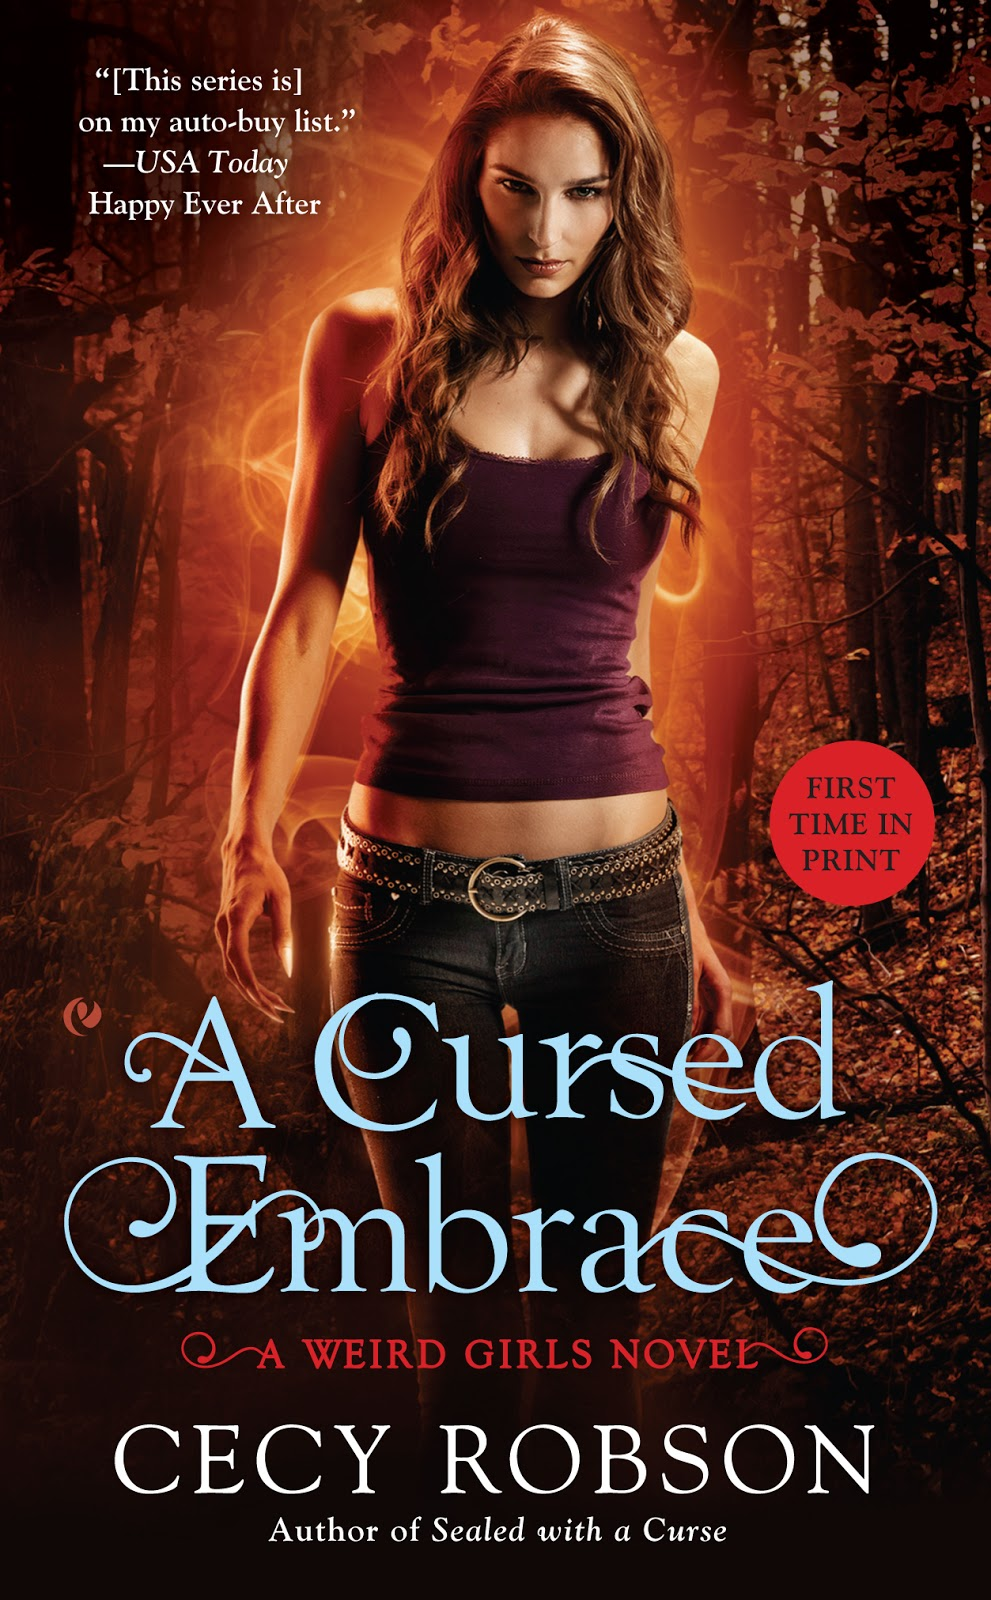 A Cursed Embrace by Cecy Robson (Weird Girls #2)